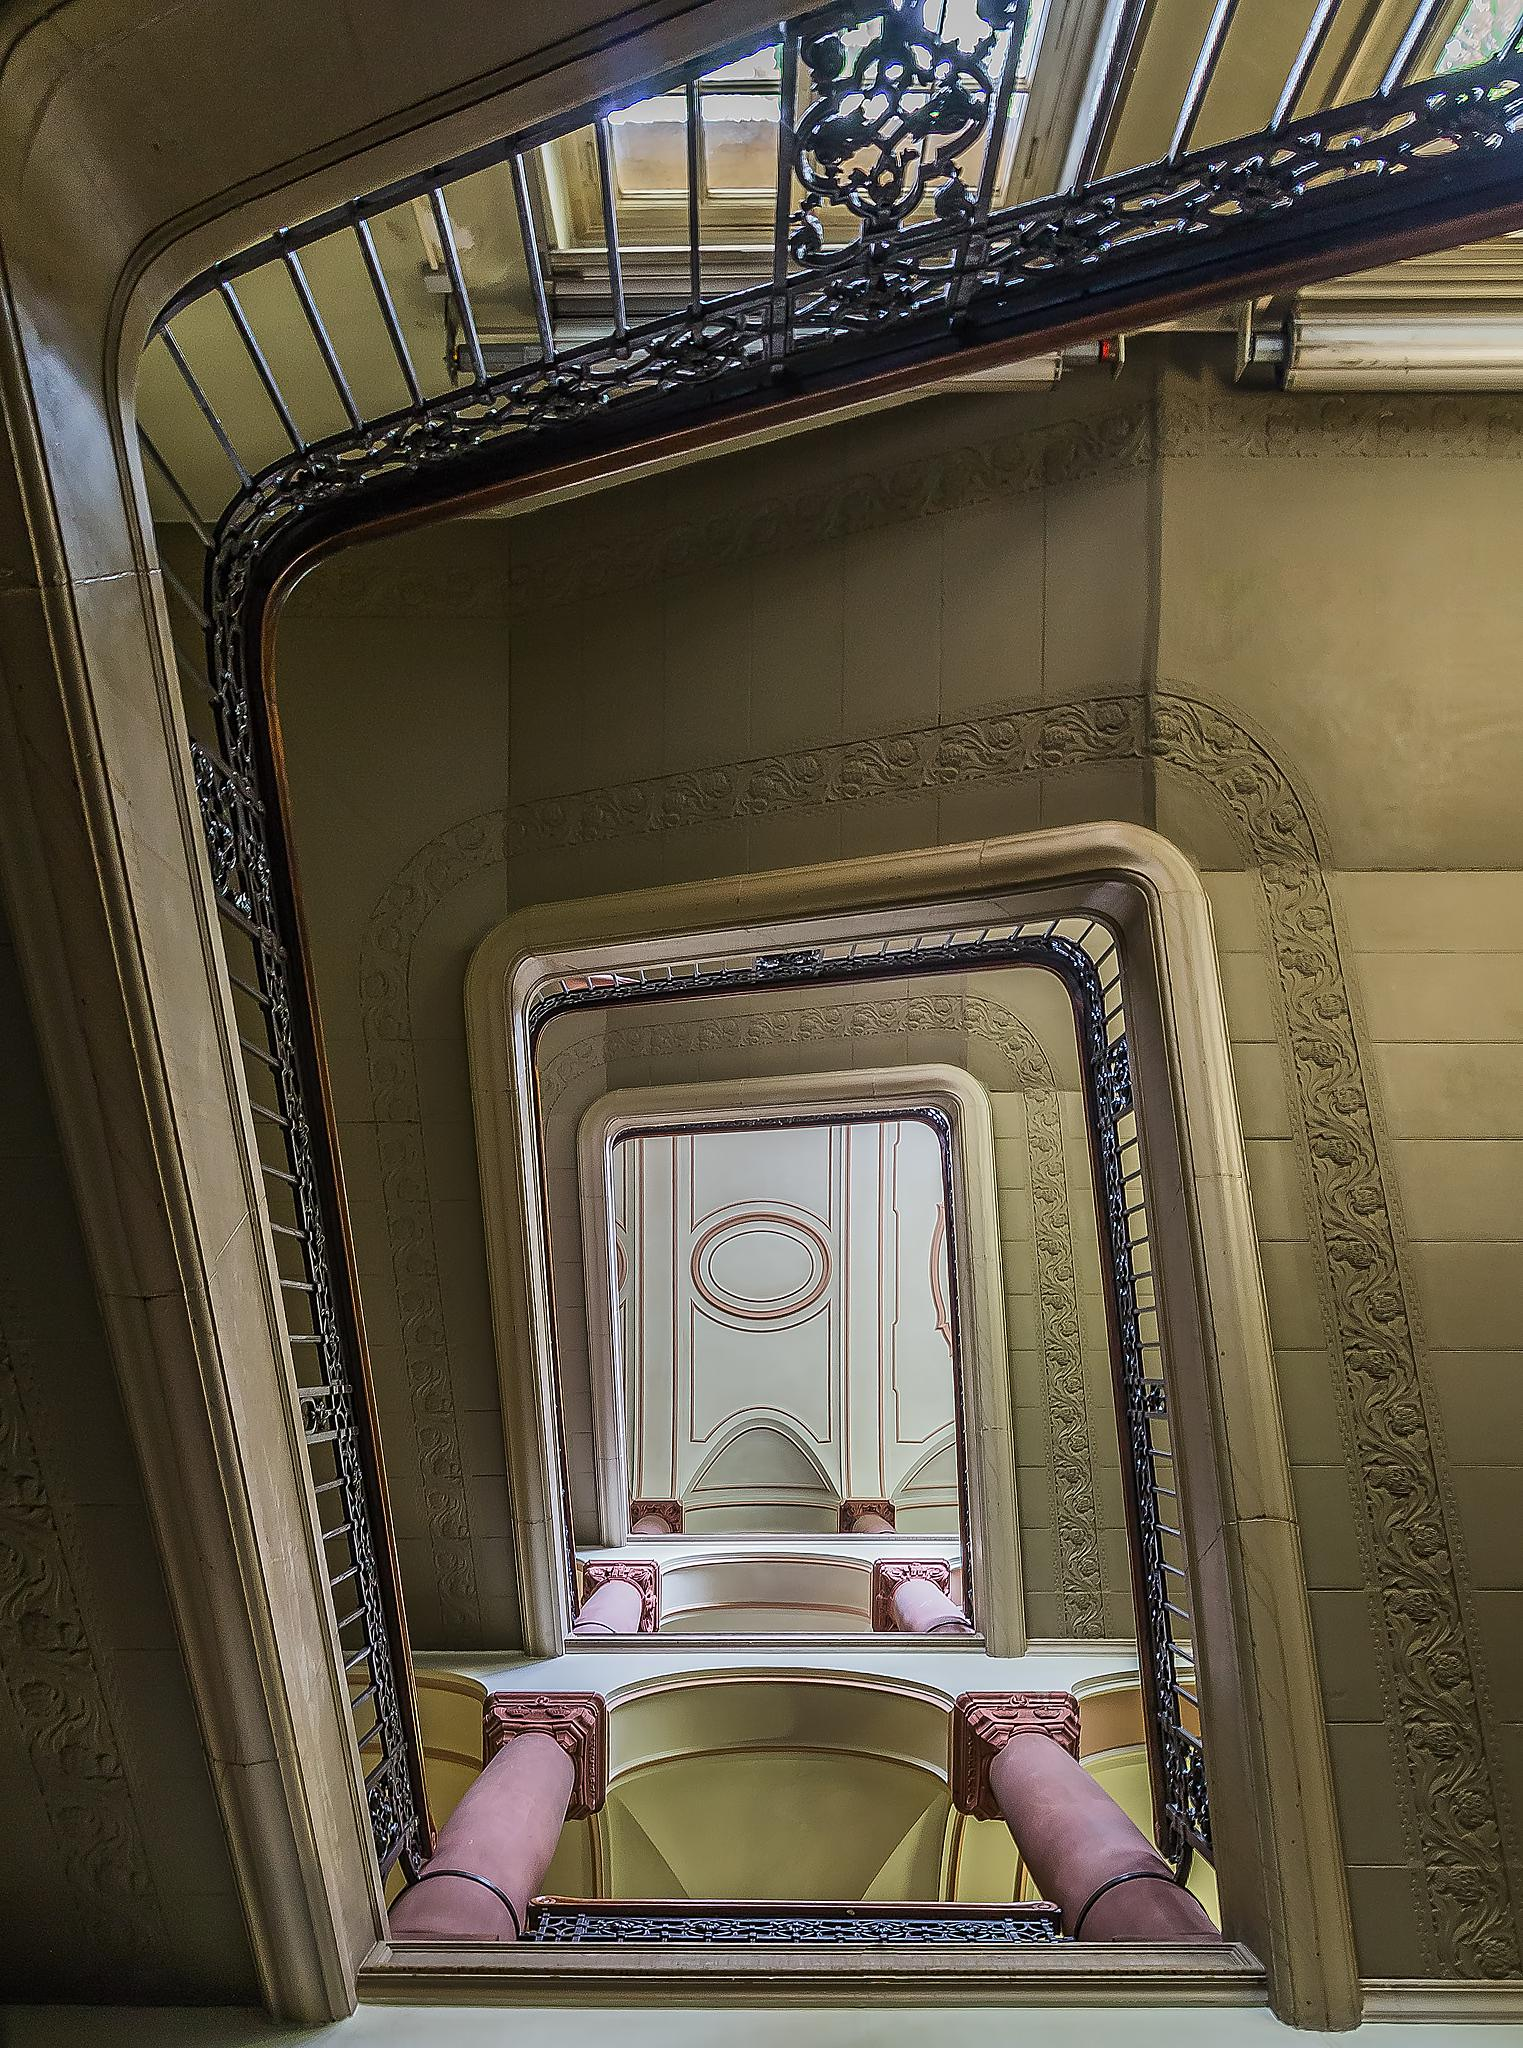 Spiral stairs II by Frank Haase